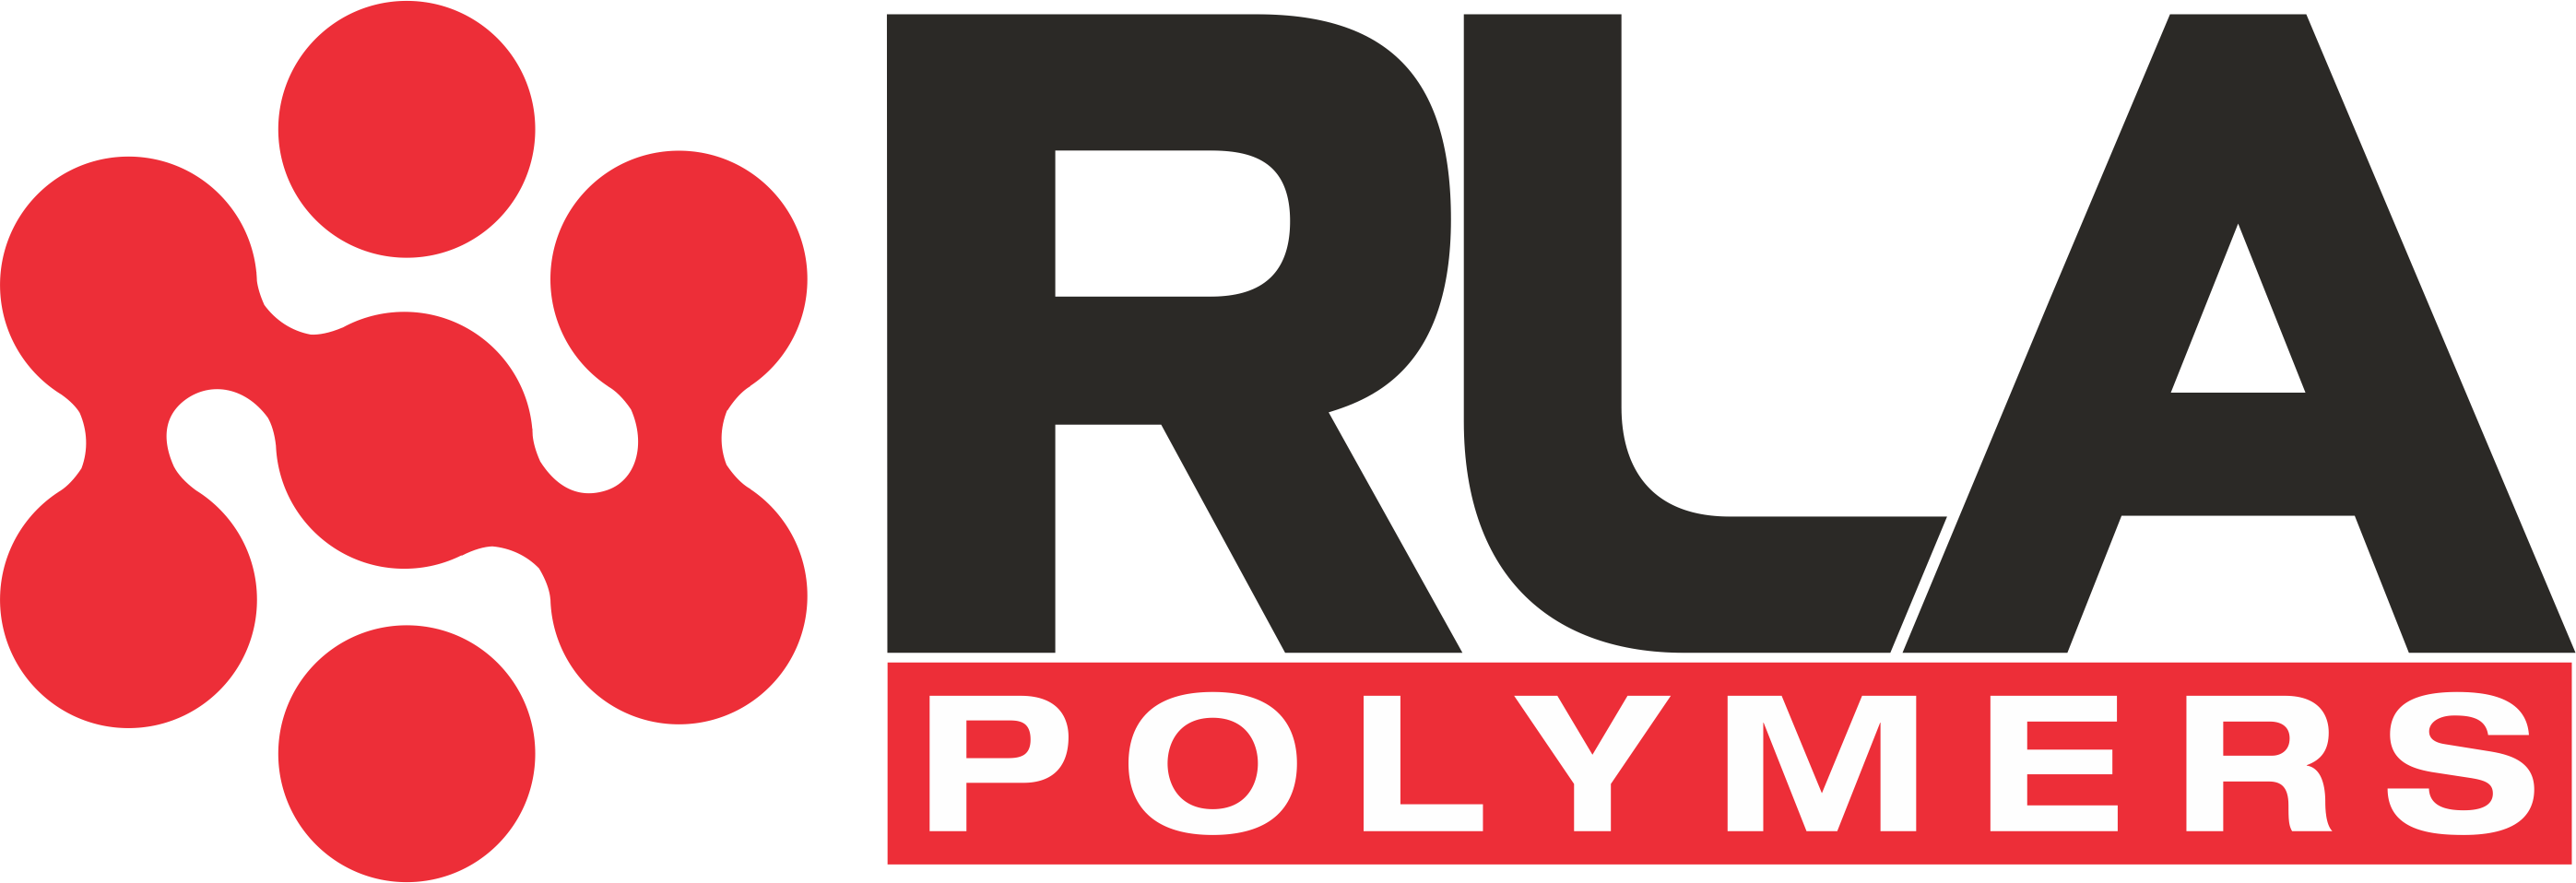 rla-polymers-black-text.png